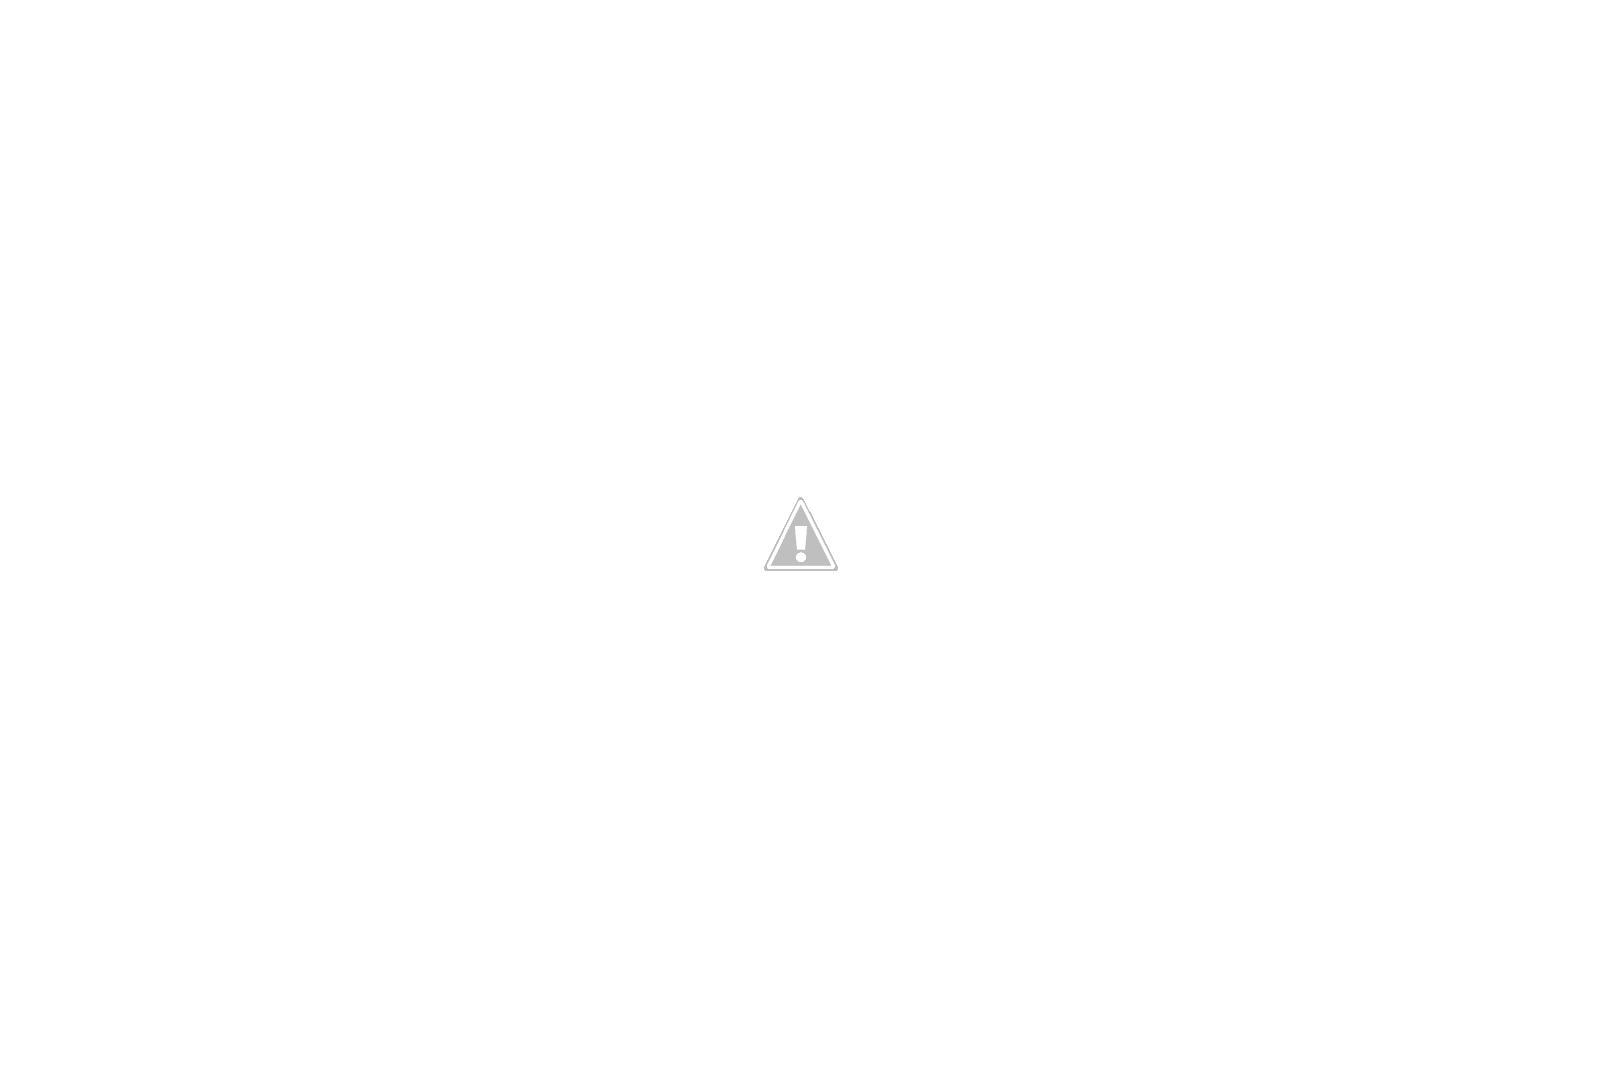 07.08.2018 - Student's party